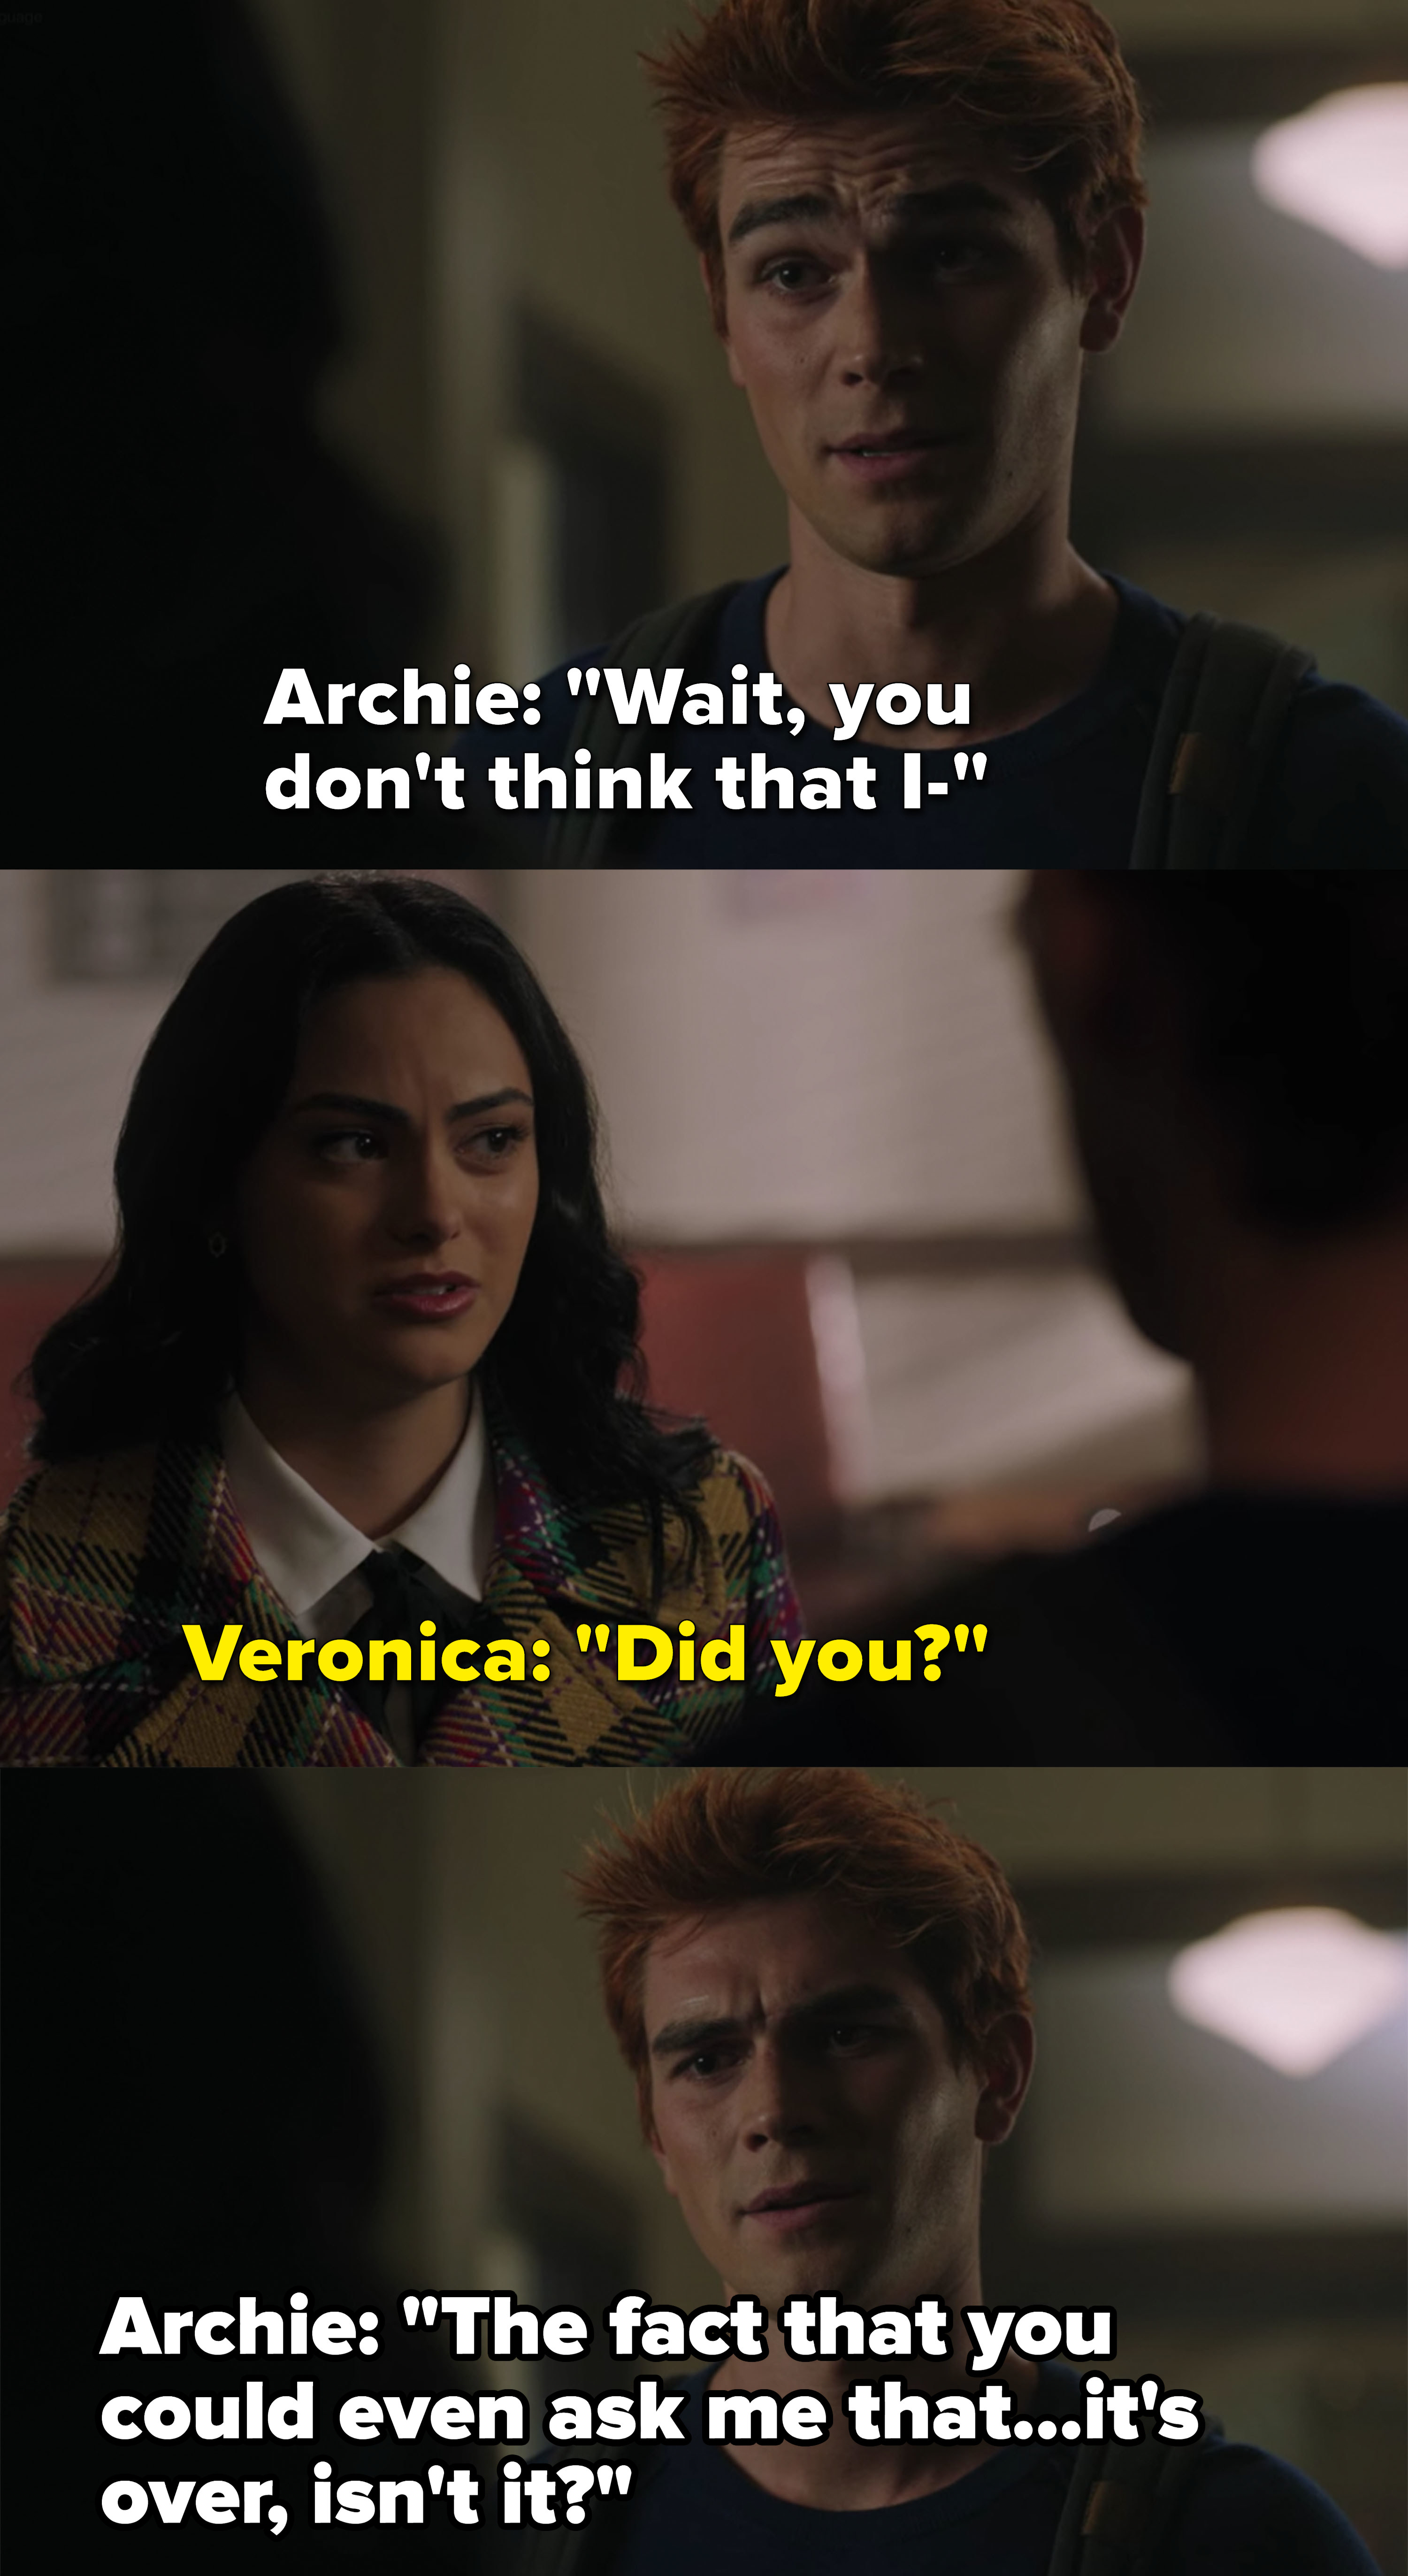 Archie and Veronica break up after she accuses him of shooting her dad